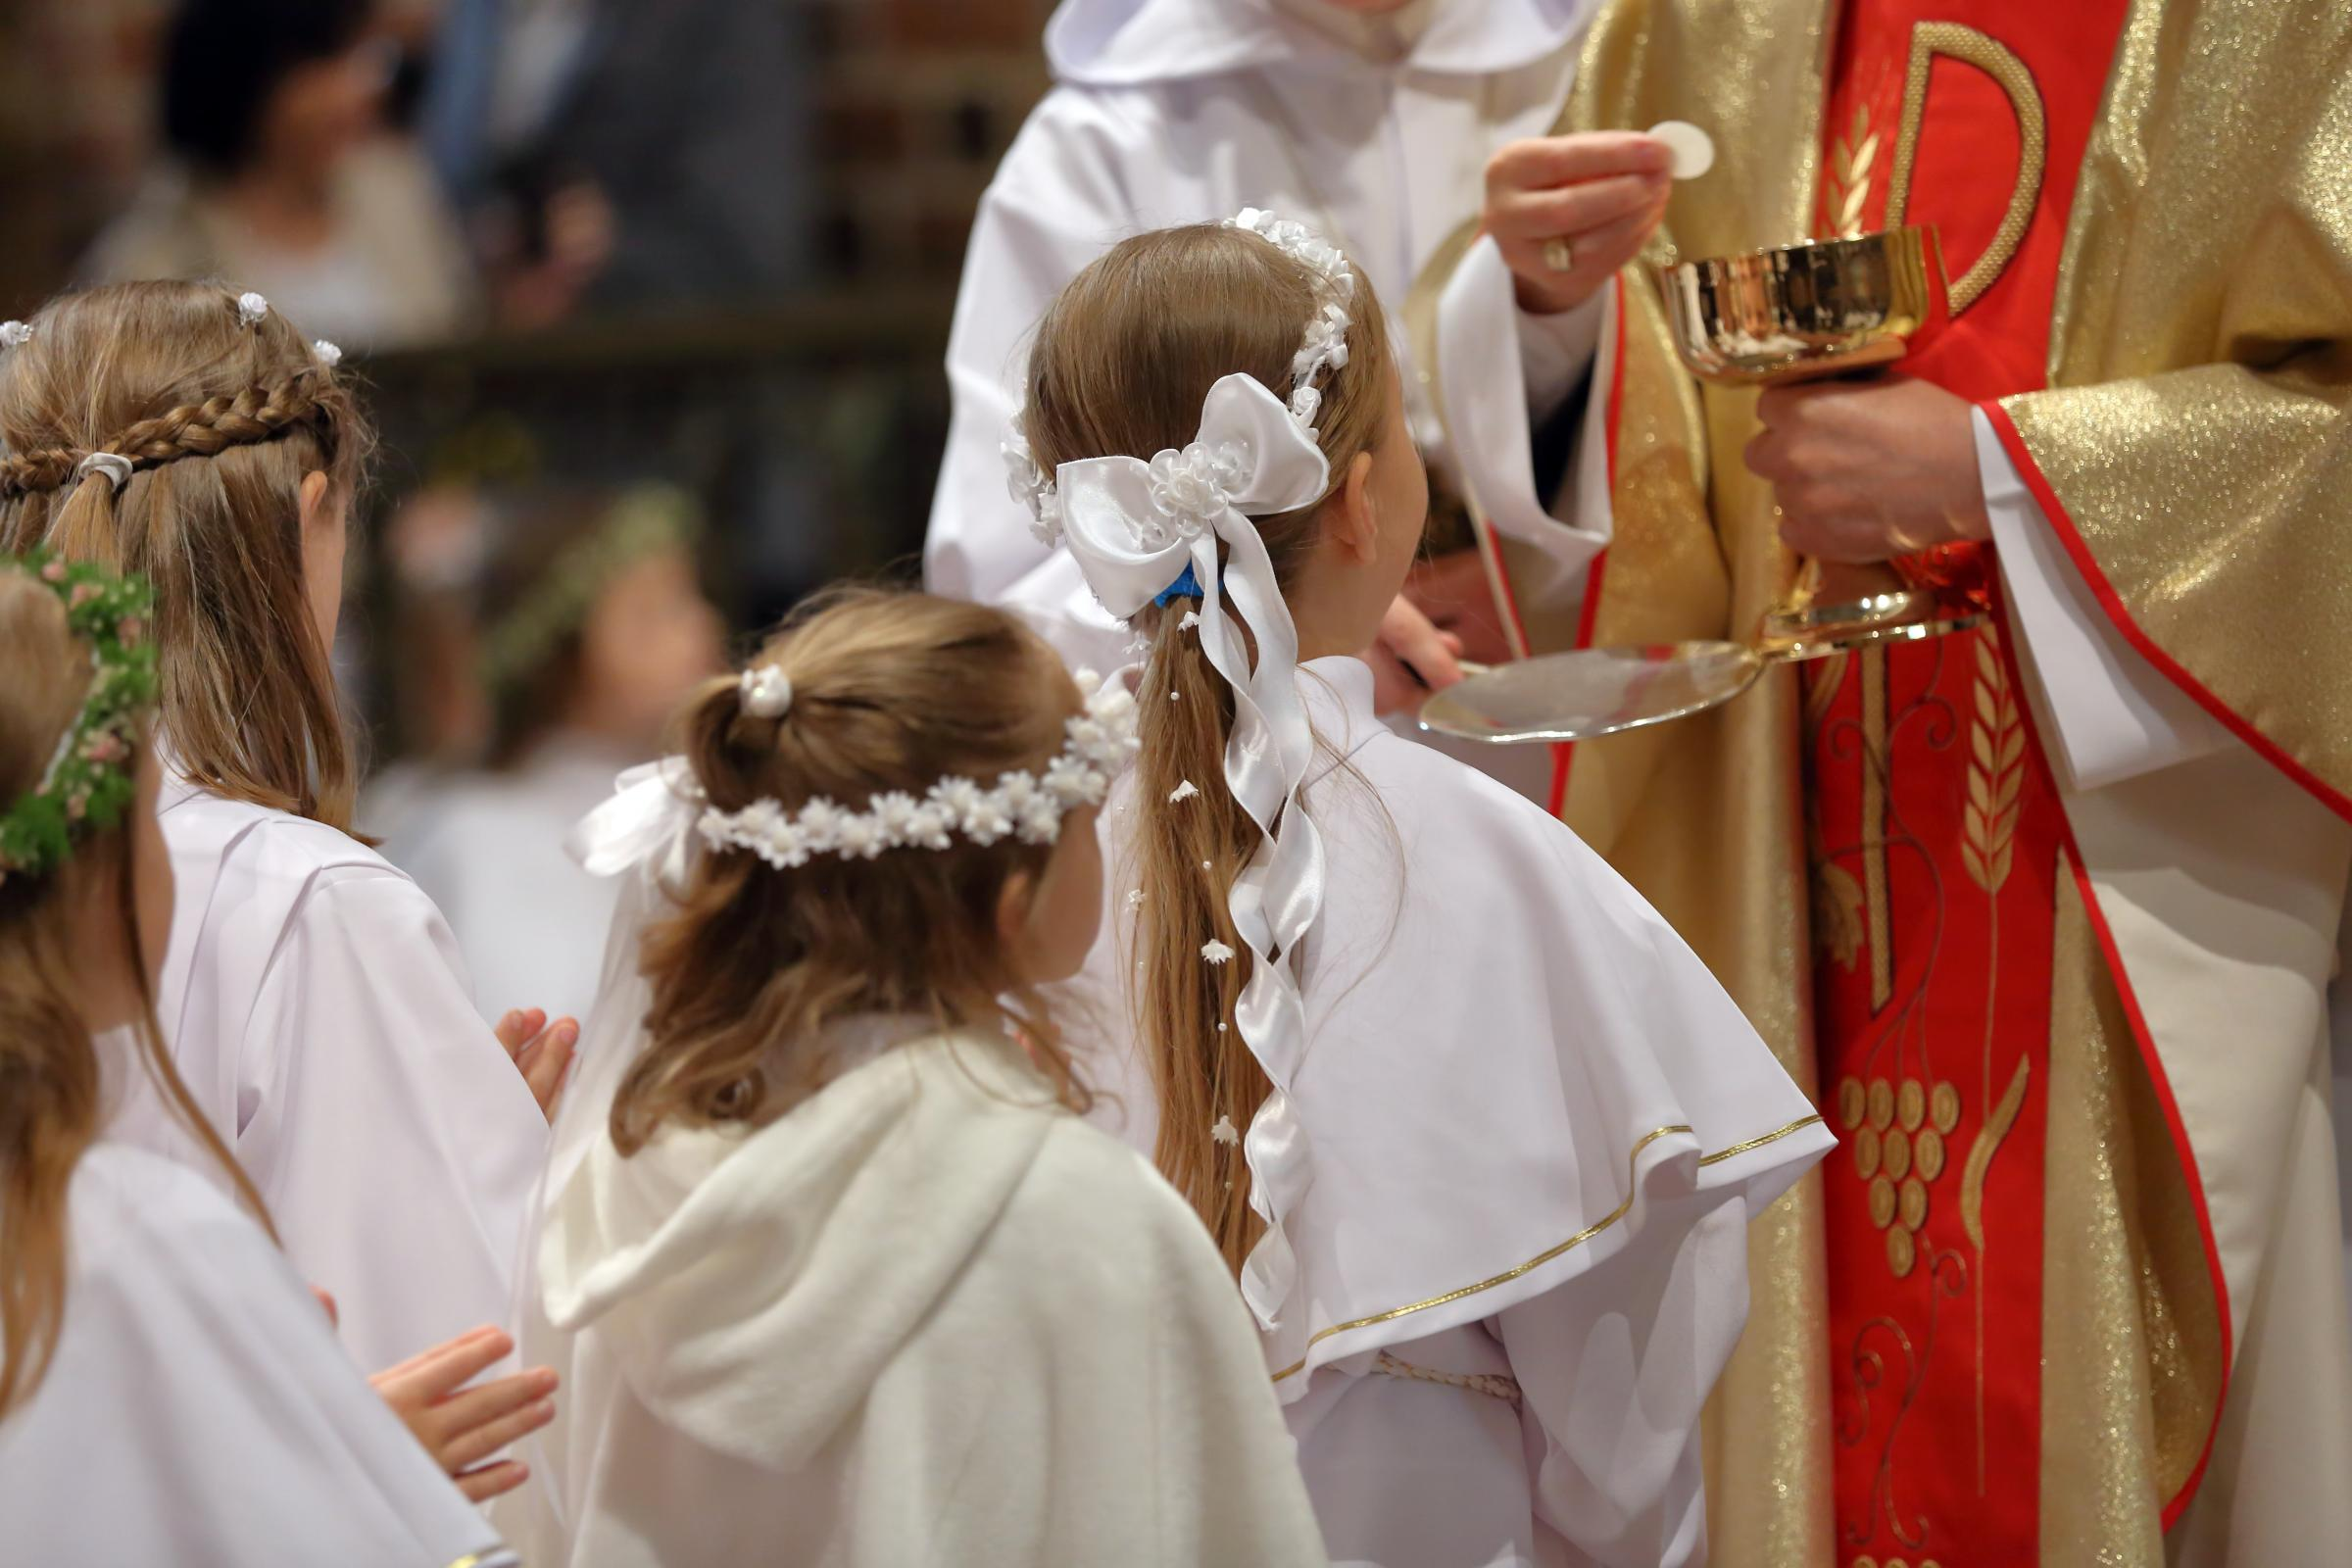 The Church carried out research on children and communion